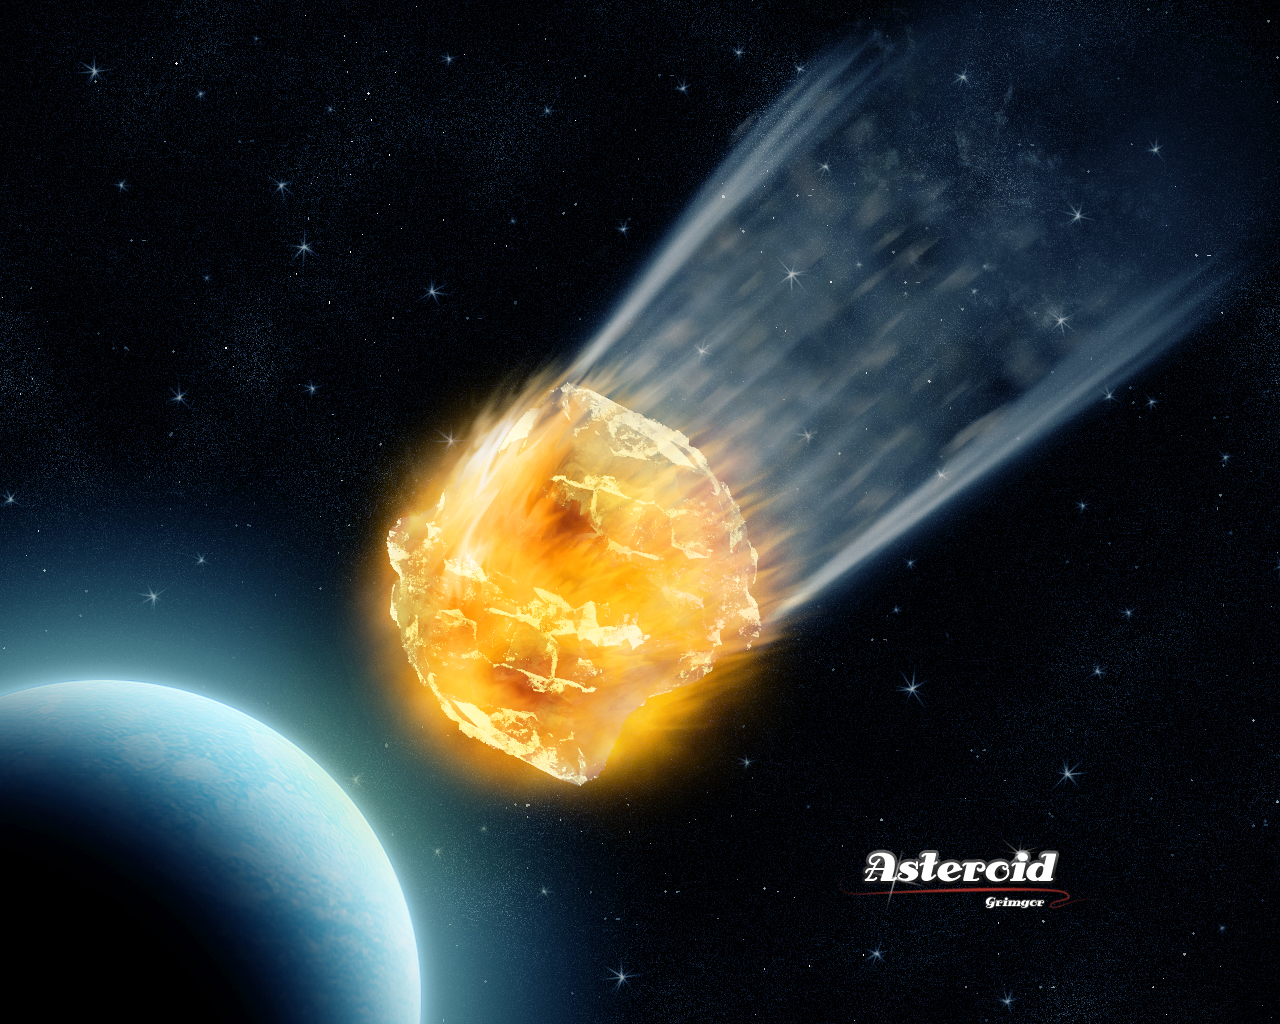 drawn picture of an asteroid - photo #49